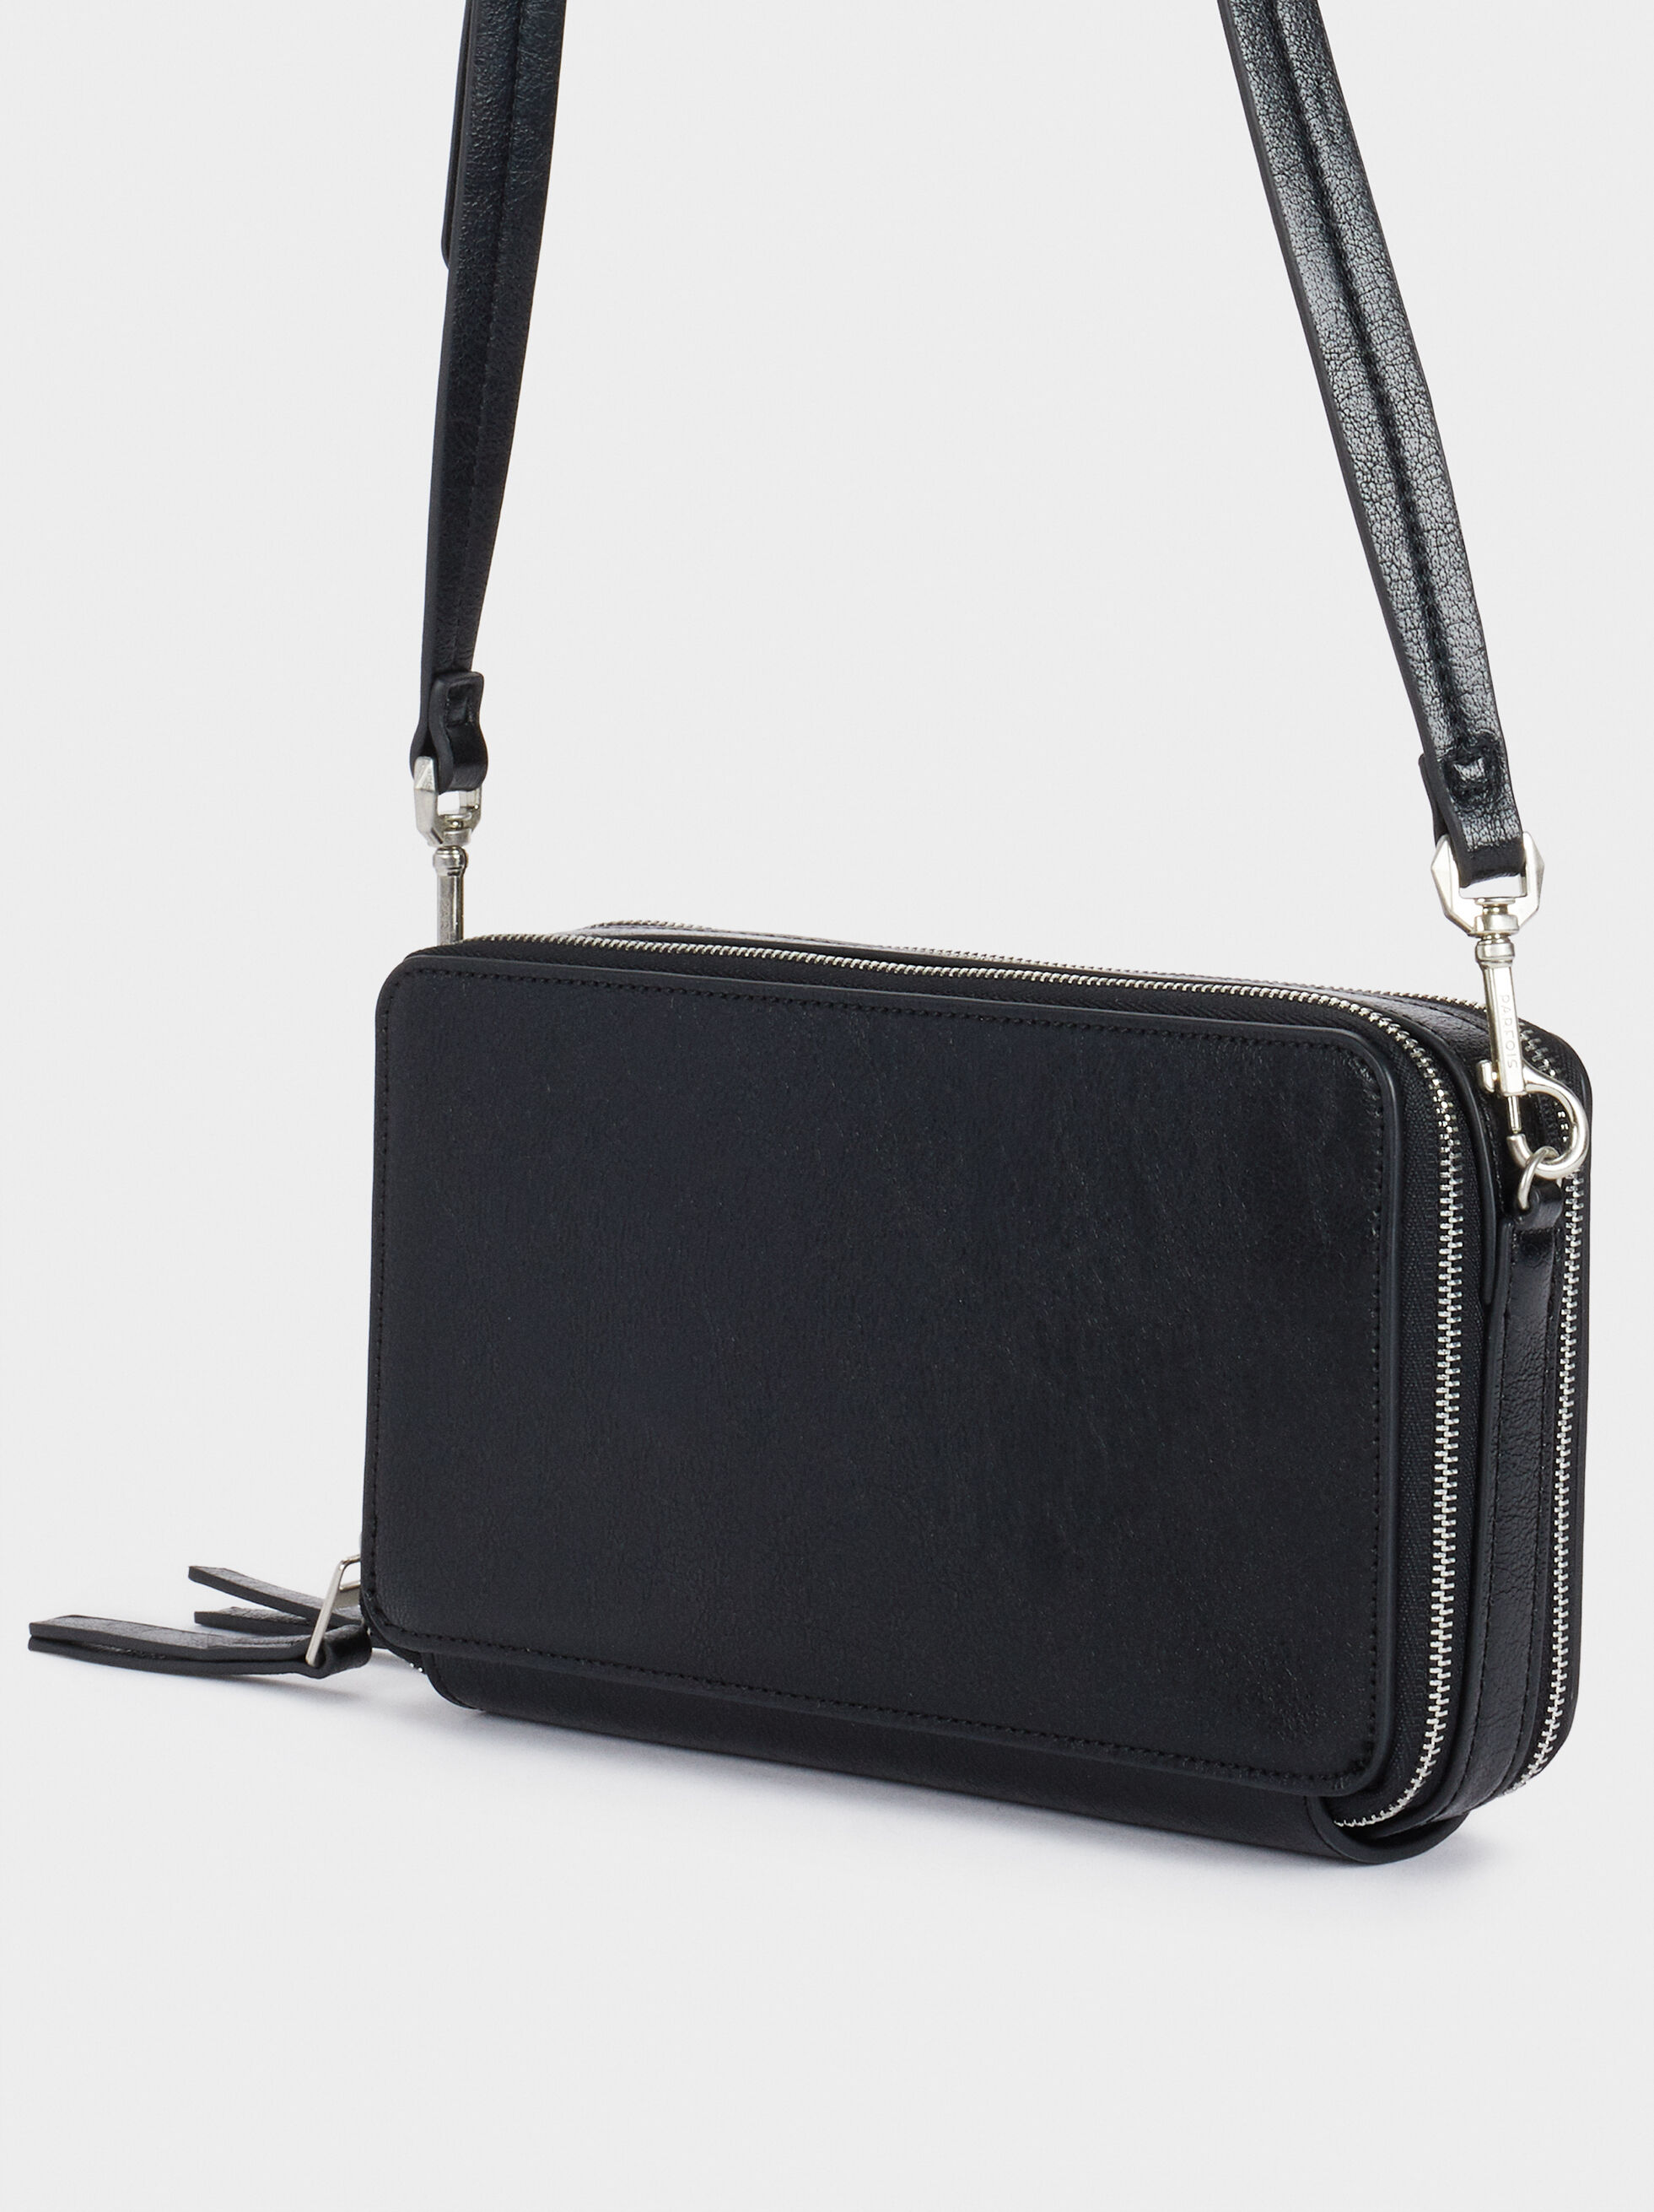 Purse With Crossbody Strap, Black, hi-res